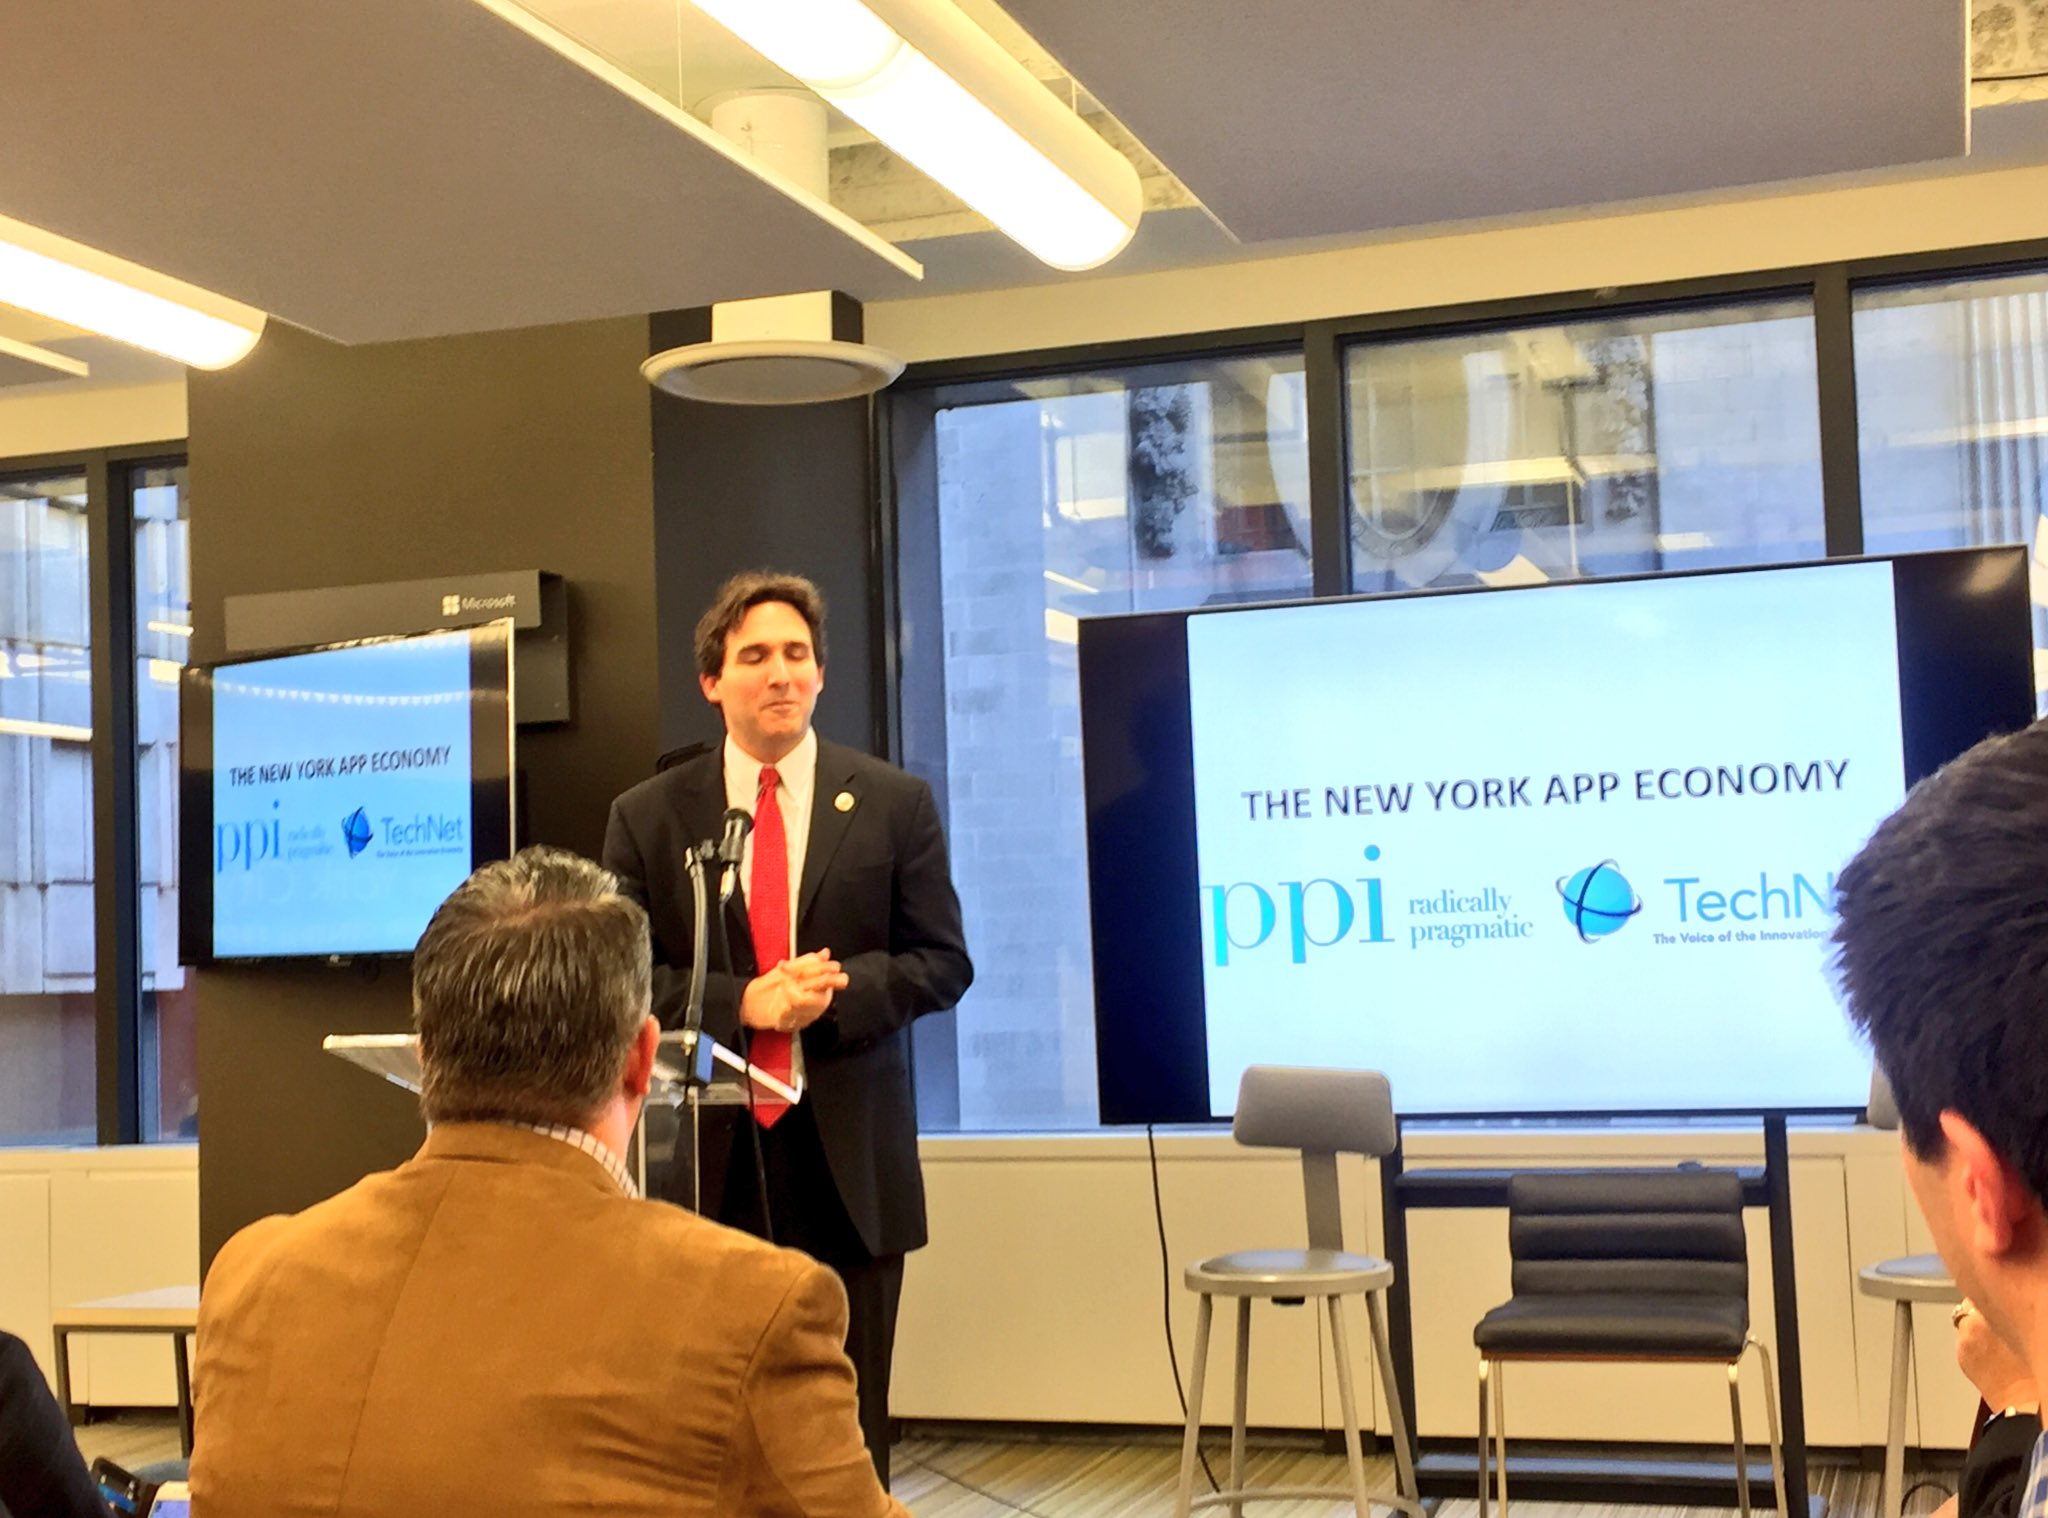 NYC Councilman @BenKallos highlights need for 21st century jobs & why tech skills programs (such as @MicrosoftNY's #TechJobsAcademy) matter. https://t.co/sM5fI0U2Q8